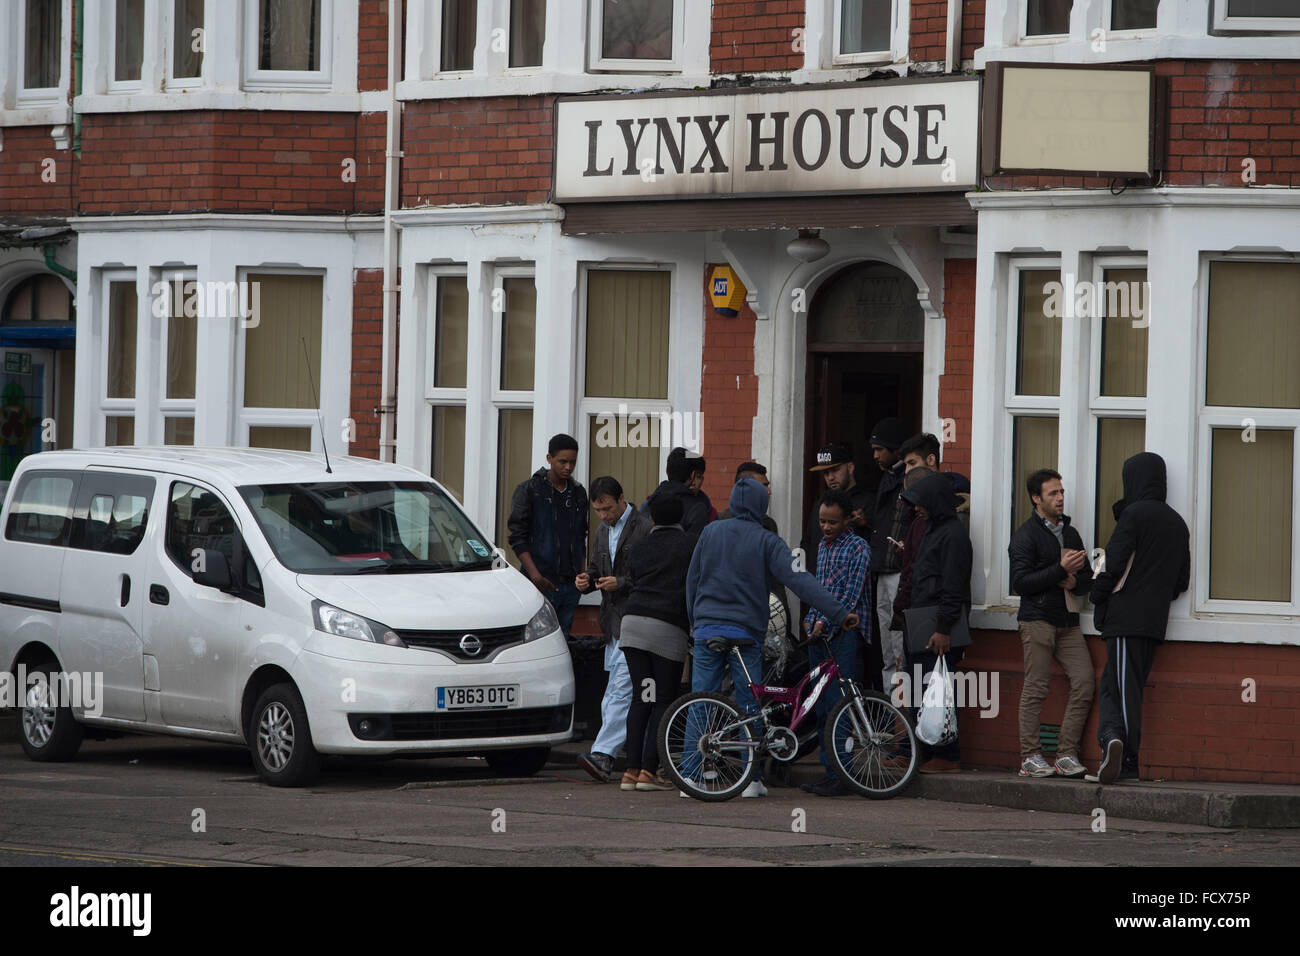 Lynx House in Cardiff, South Wales, which houses asylum seekers. - Stock Image